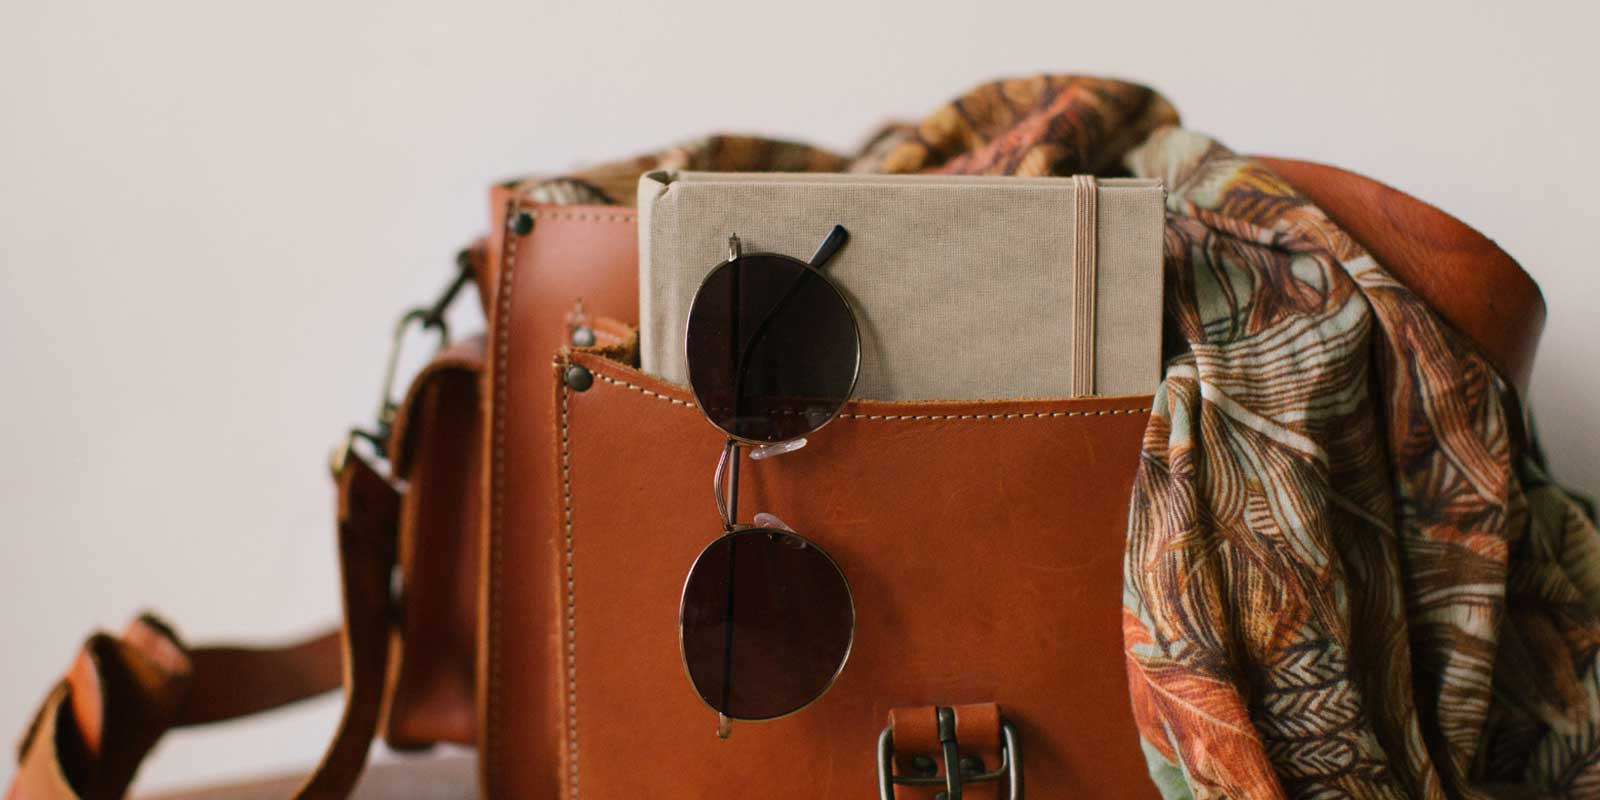 What is the difference between a purse and a handbag?